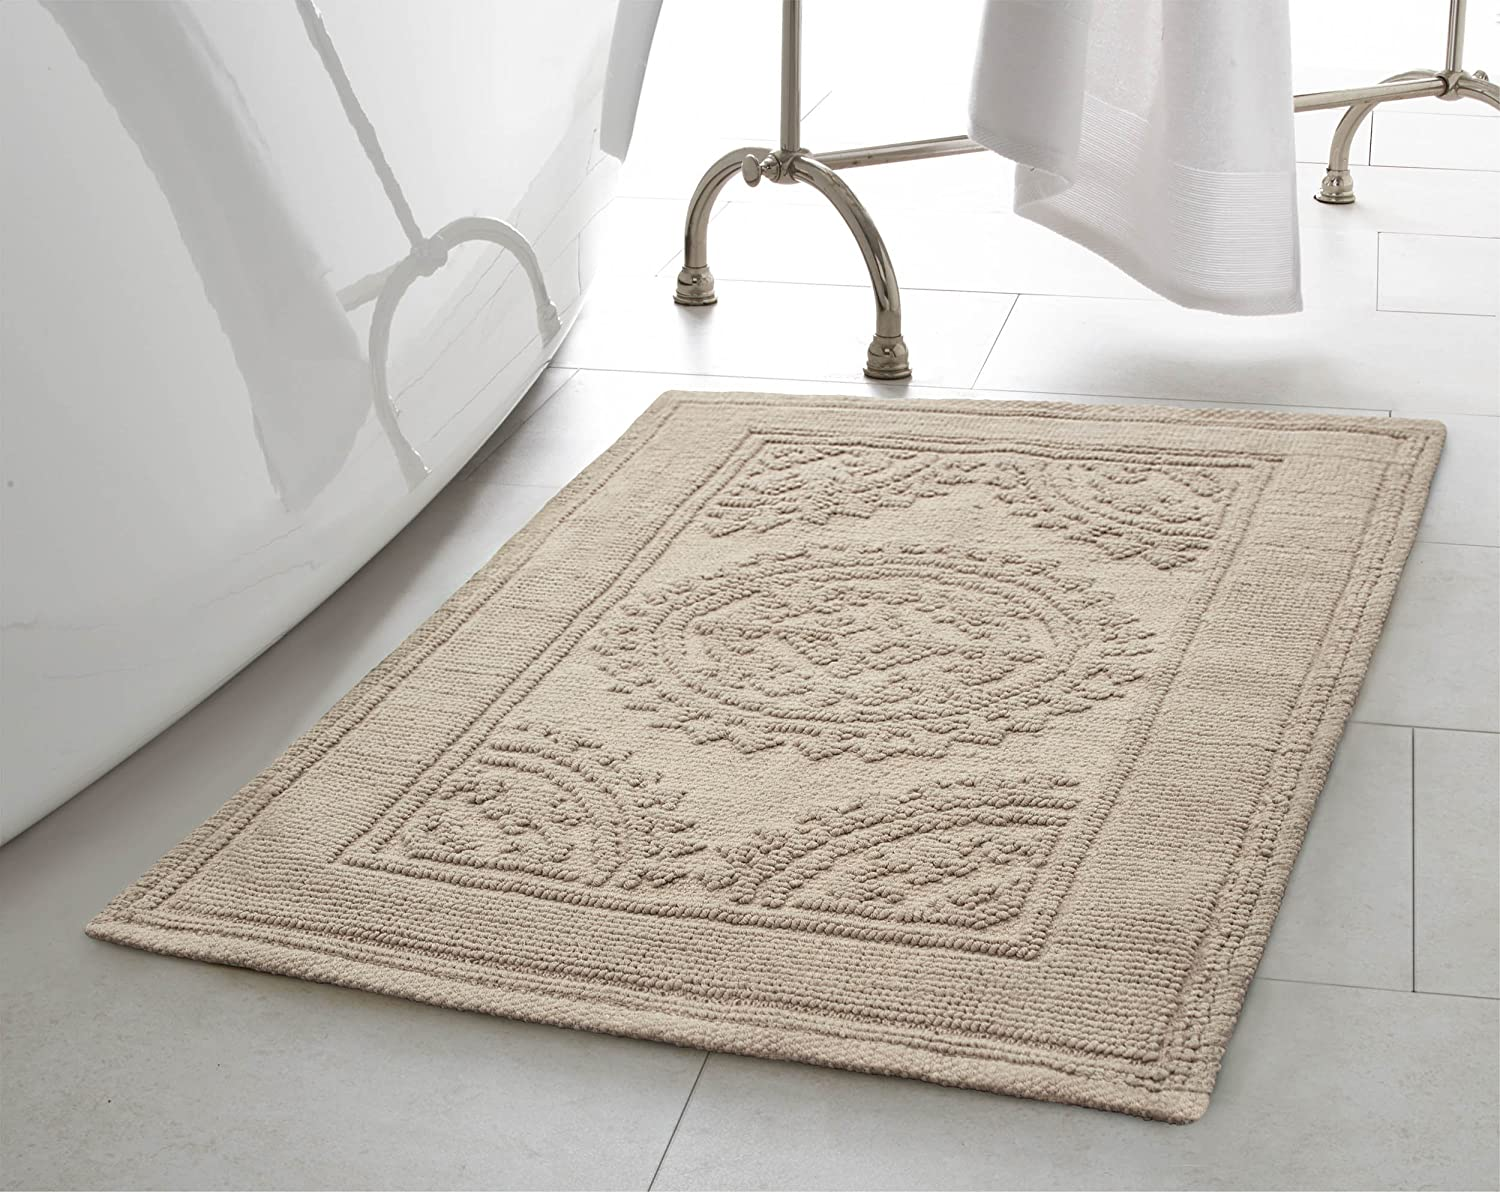 Jean Pierre New York Cotton StoneWash Medallion 17x24/20x32 in. 2-Piece Bath Rug Set, Taupe Gray